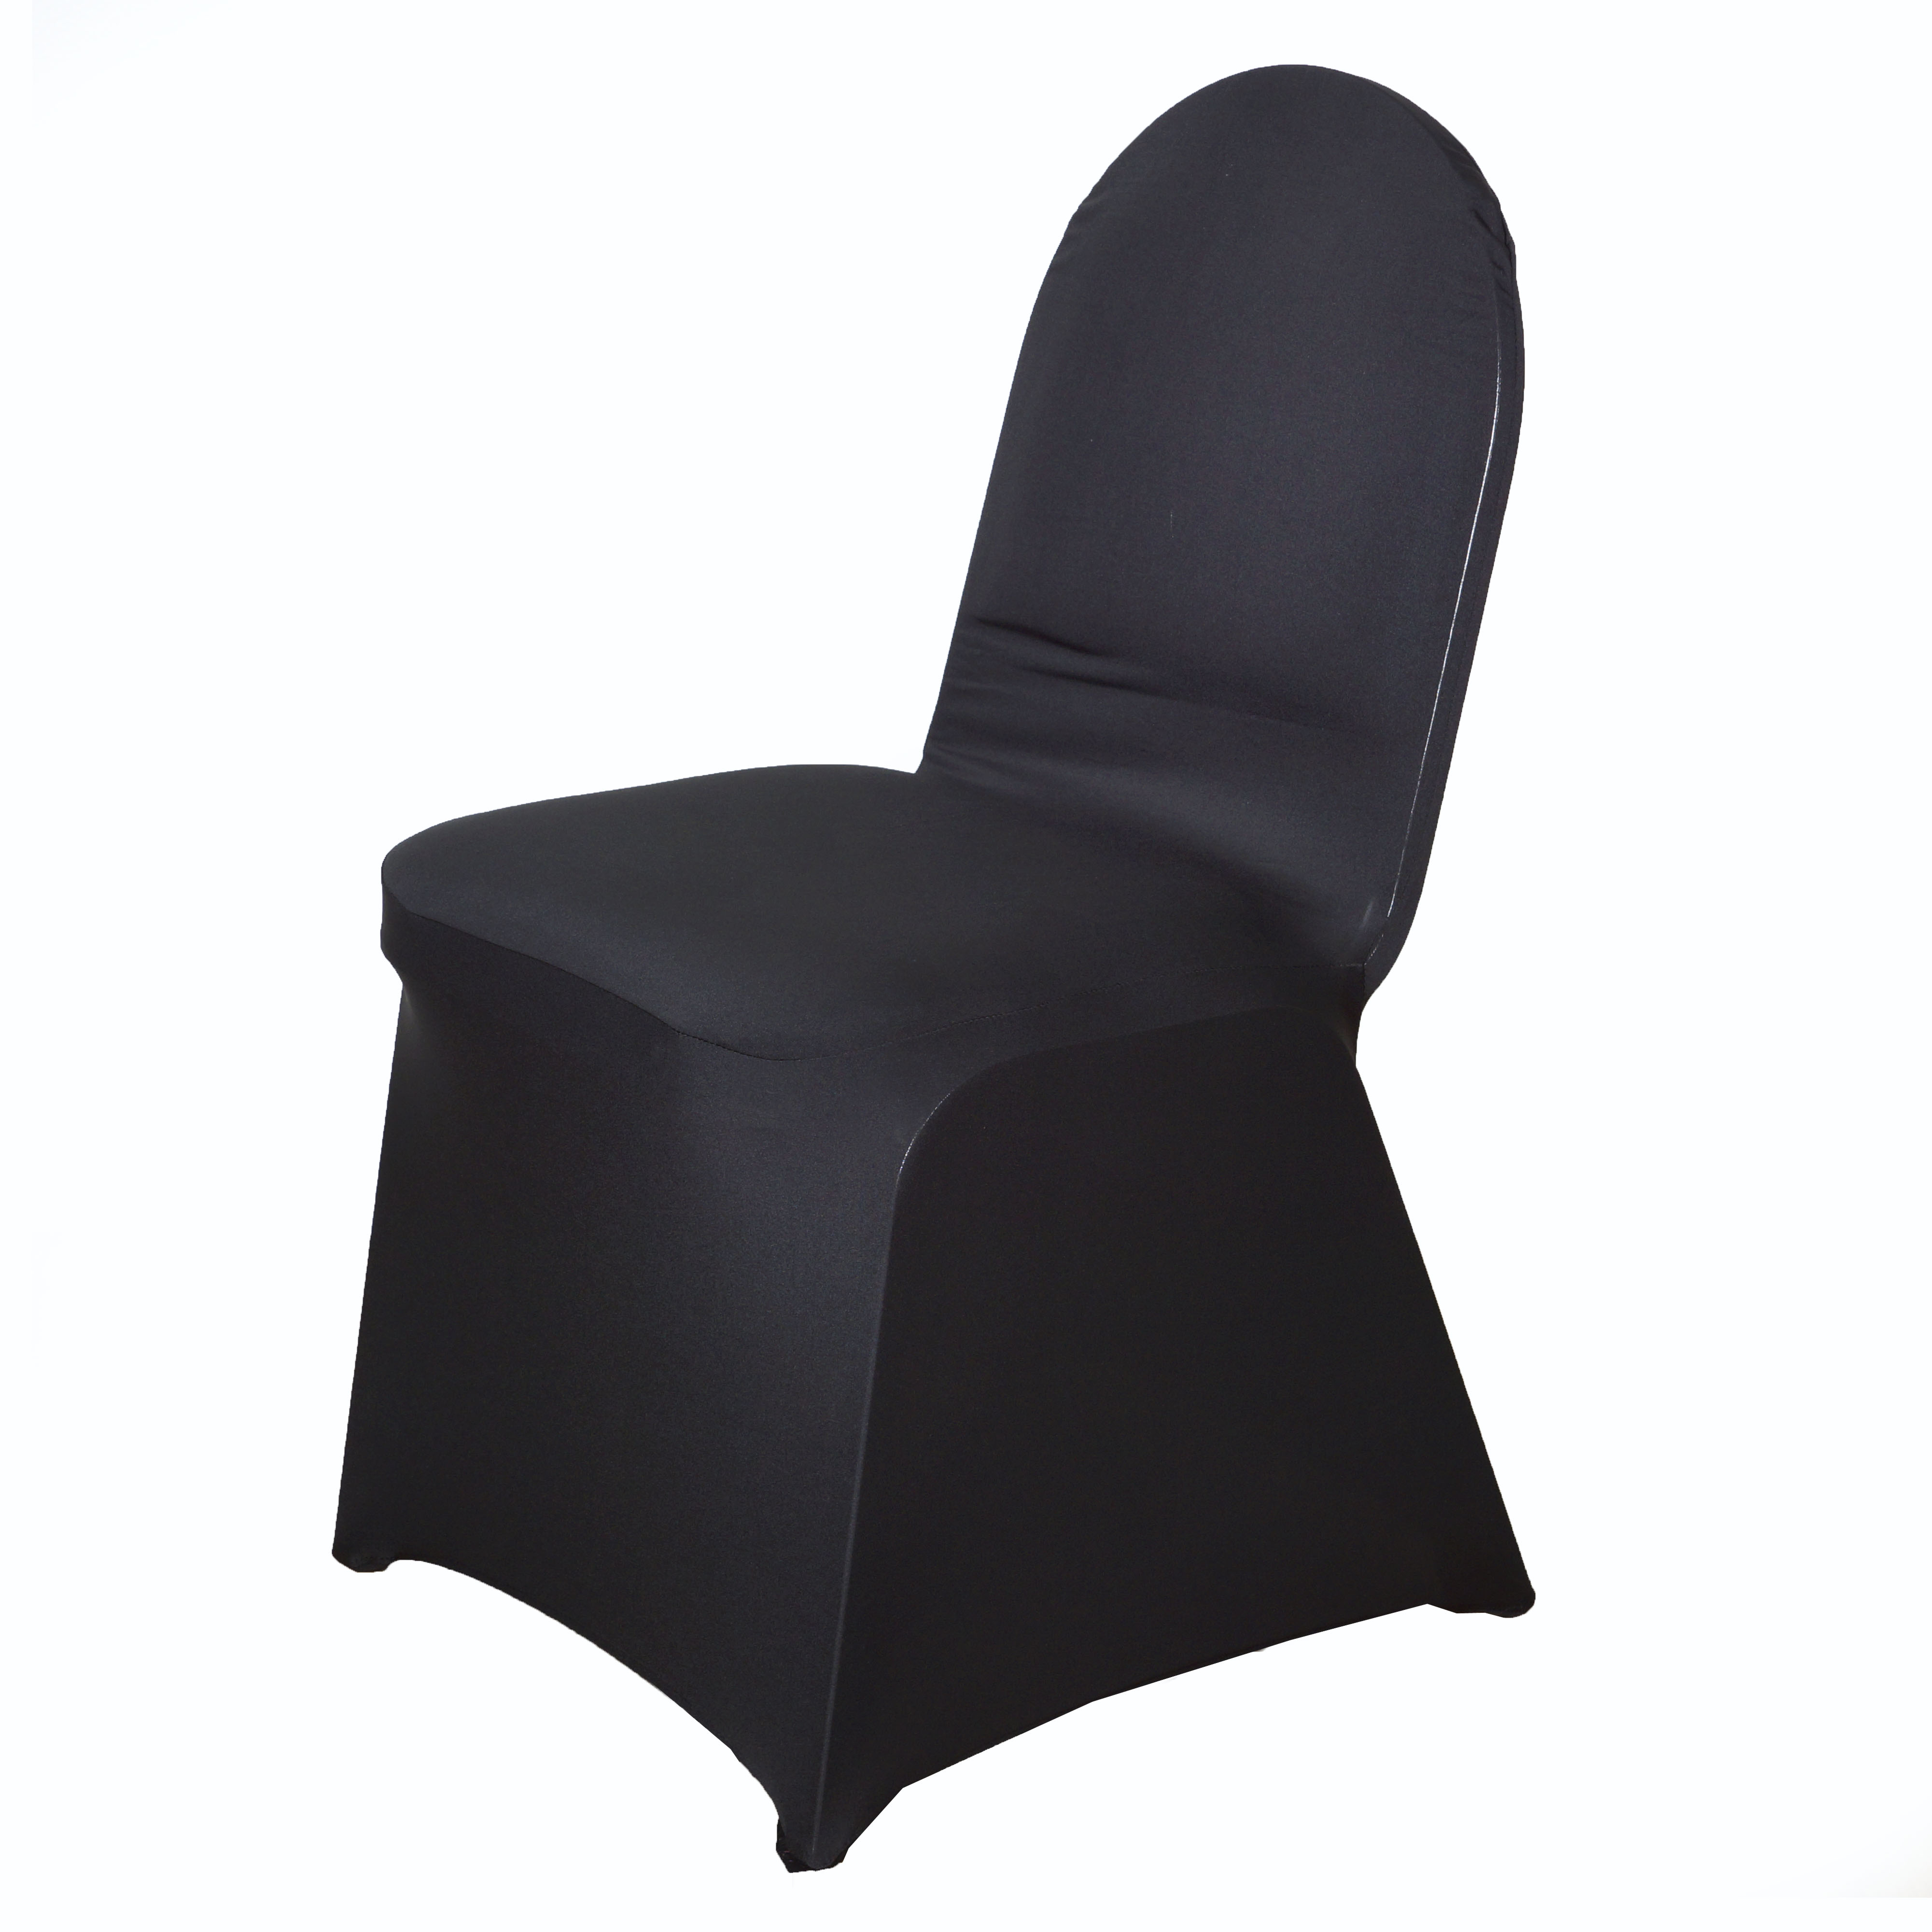 diy universal chair covers wedding cover hire stirling 200 pcs spandex stretchable wholesale